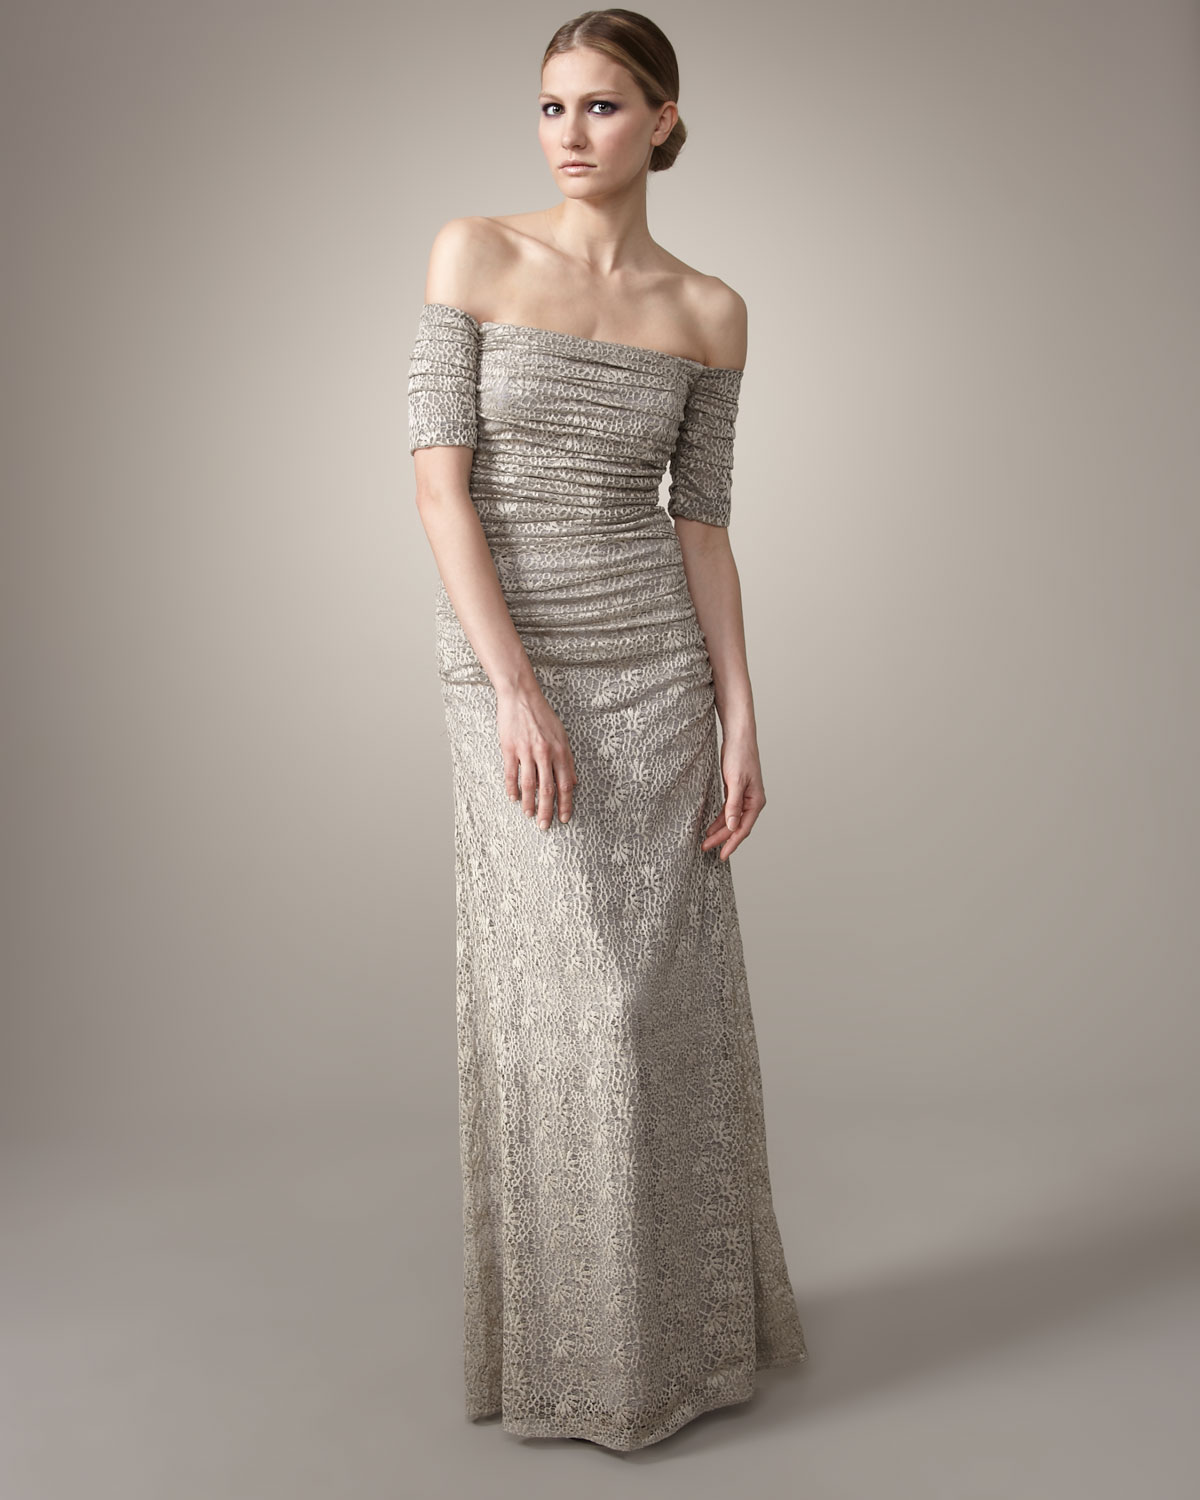 Lyst - Badgley Mischka Off-the-shoulder Stretch-lace Gown in Metallic